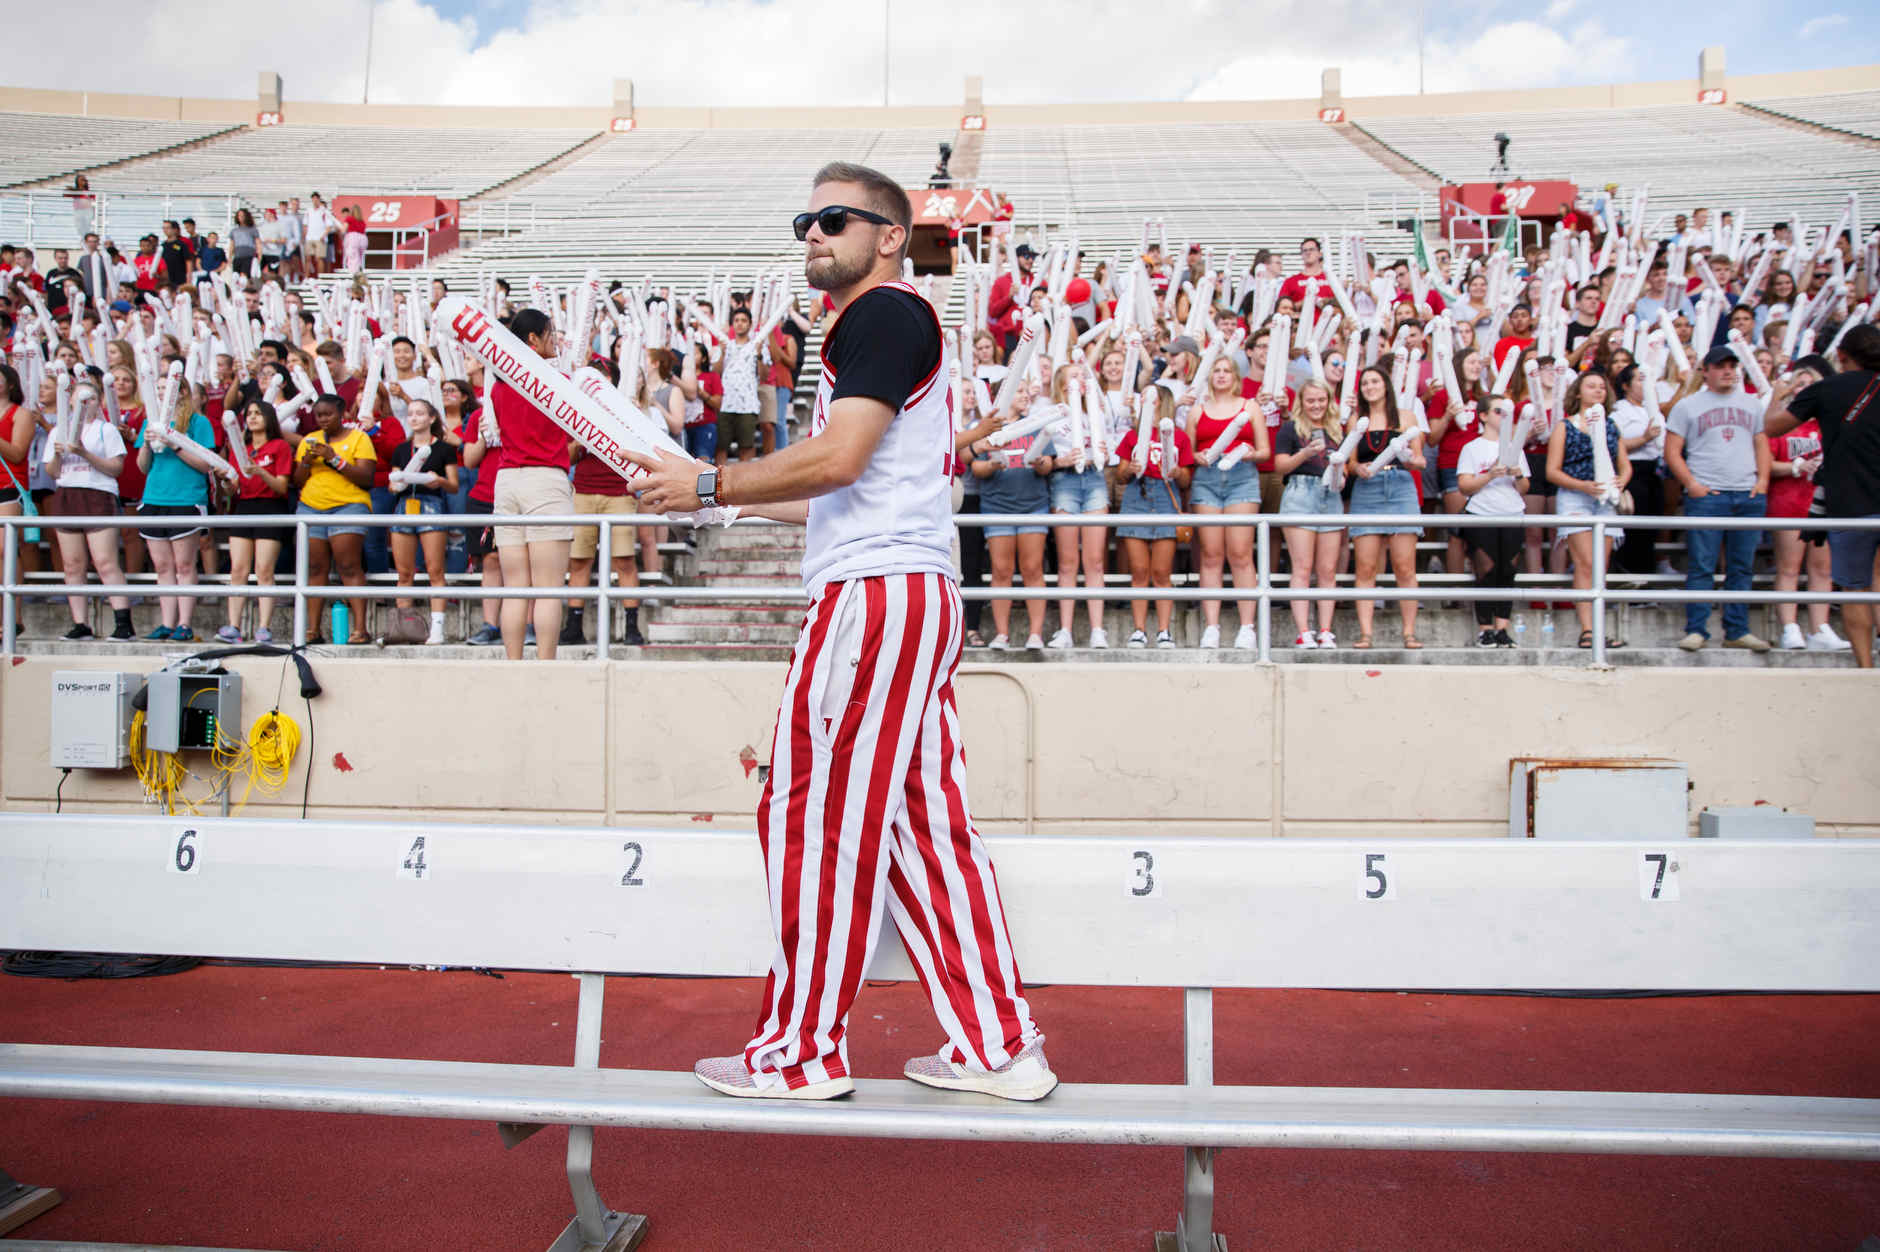 Indiana University Orientation Team member Kyle Parry pumps up the crowd during the Traditions and Spirit of IU at Memorial Stadium on Friday, Aug. 23, 2019. (James Brosher/Indiana University)